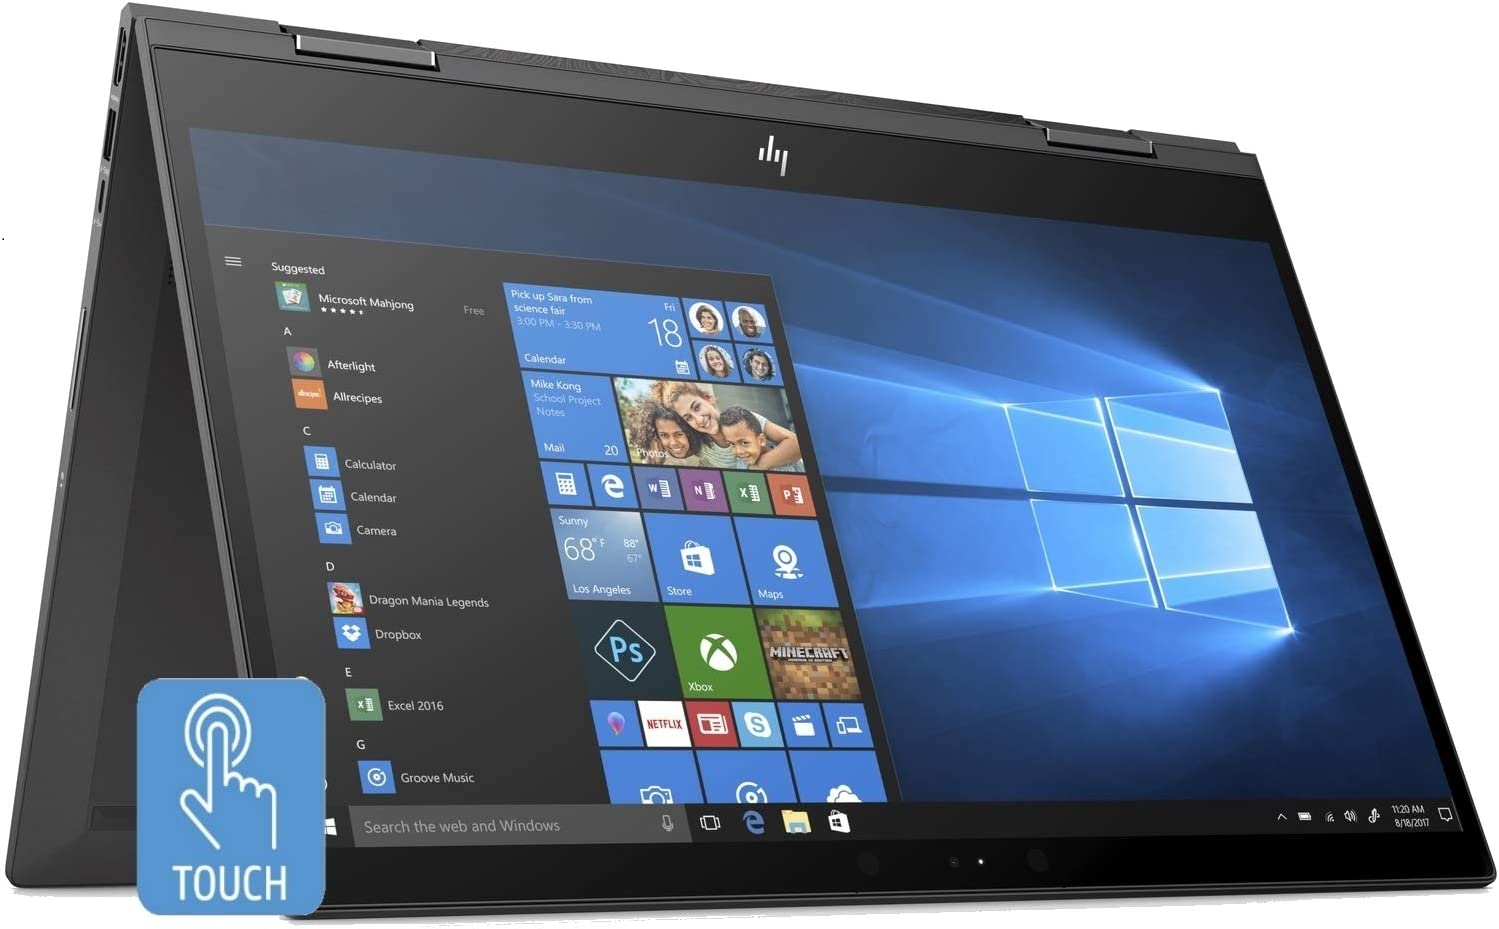 HP Envy x360 15.6-in Full HD Touchscreen AMD Ryzen 5 8GB 256GB SSD 2-in 1 Convertible Laptop (Renewed)